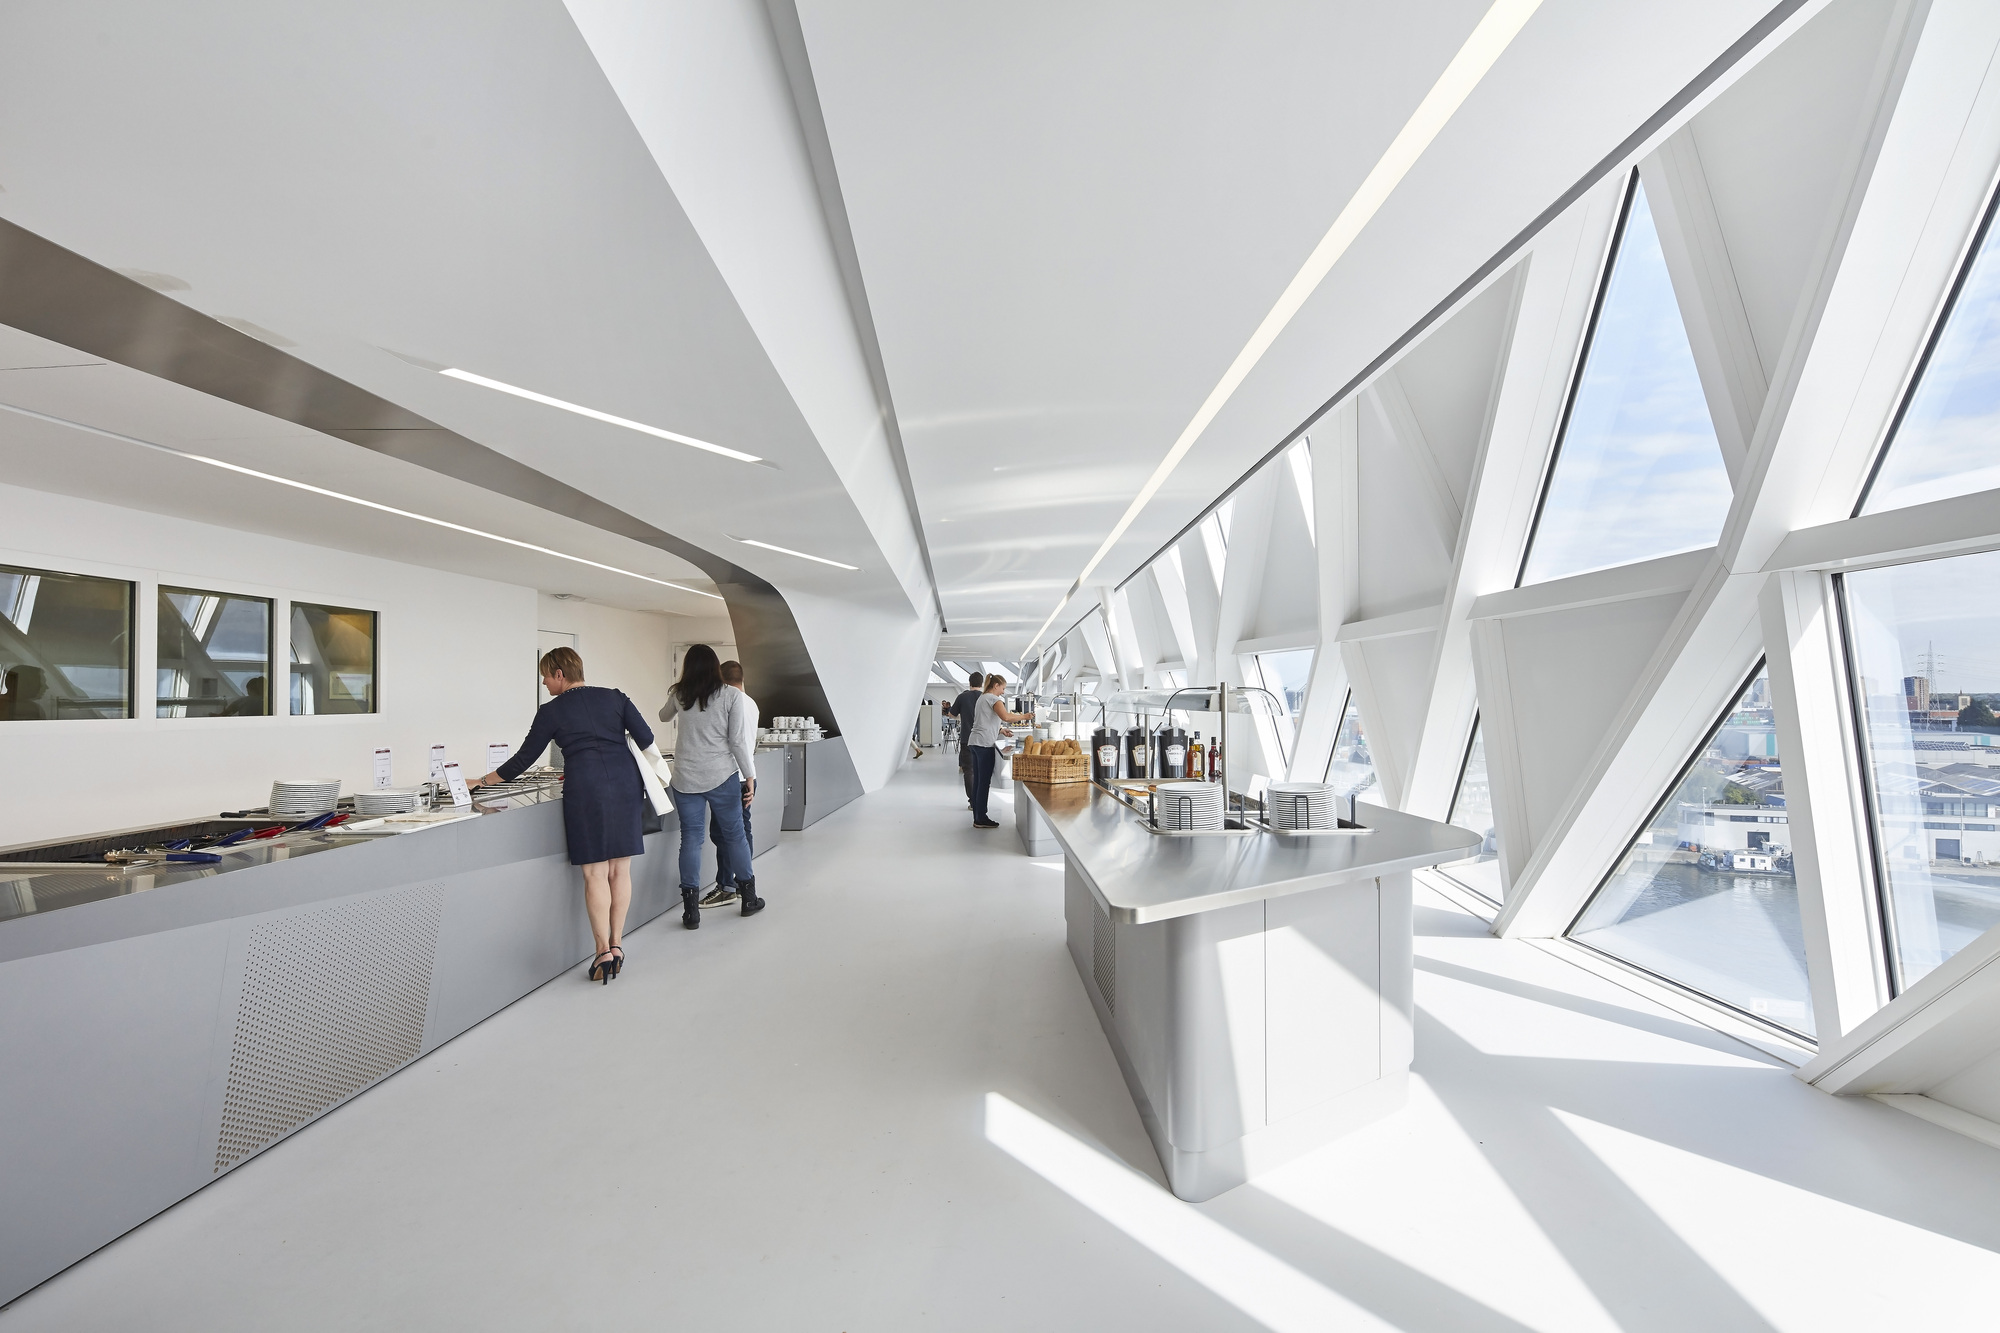 Gallery of antwerp port house zaha hadid architects 17 for Interieur antwerpen